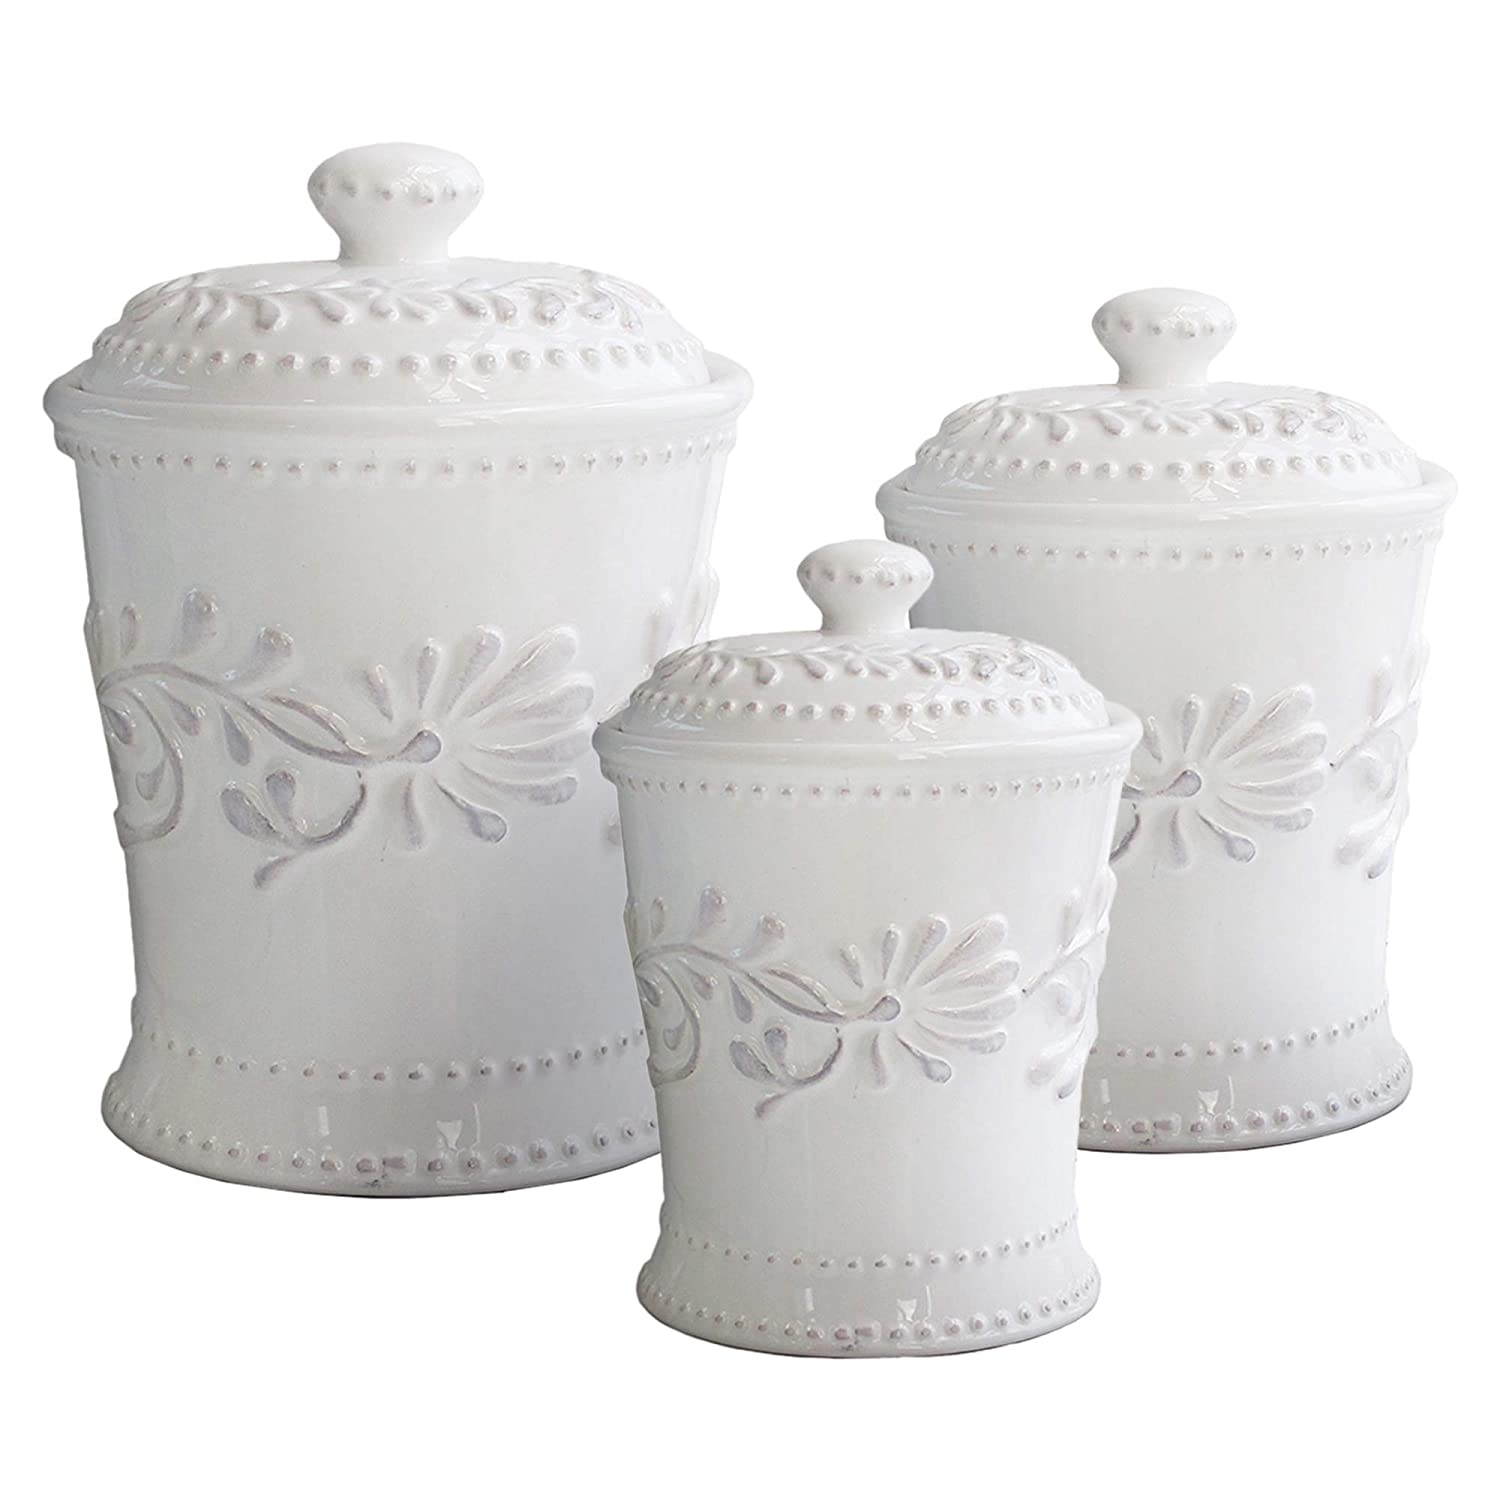 American Atelier 1564326CANRB Bianca Leaf 3 Piece Ceramic Canister Set with Lids 80 oz./48 oz./20 oz. White